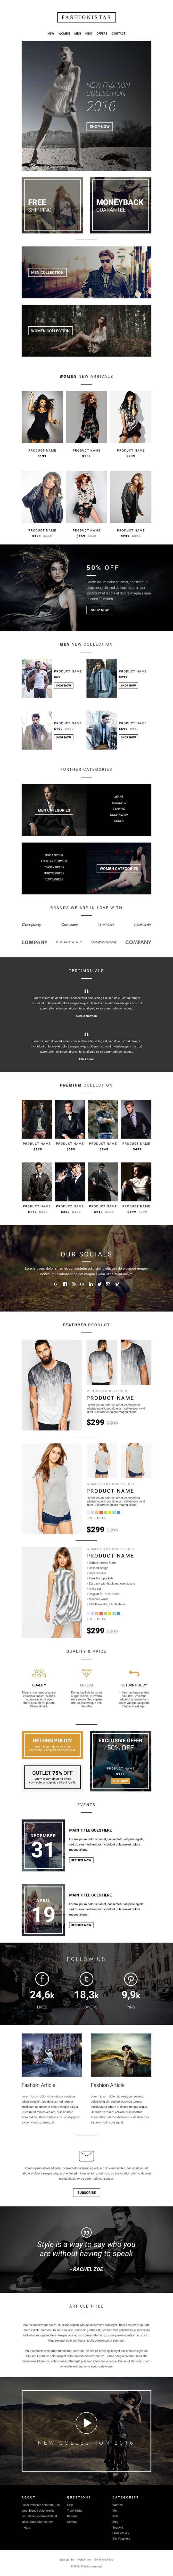 Responsive Fashion E-mail template for promoting your eshop, products and services. 59 Modules in order to design the ideal newsletter for your needs. Modern, minimalistic, easy to customise and ideal to gain new clients or customers.  Our template is compatible with Mailchimp, Campaign Monitor & Stampready. All the features of each platform are fully supported somethin that make the customization of the template really easy.